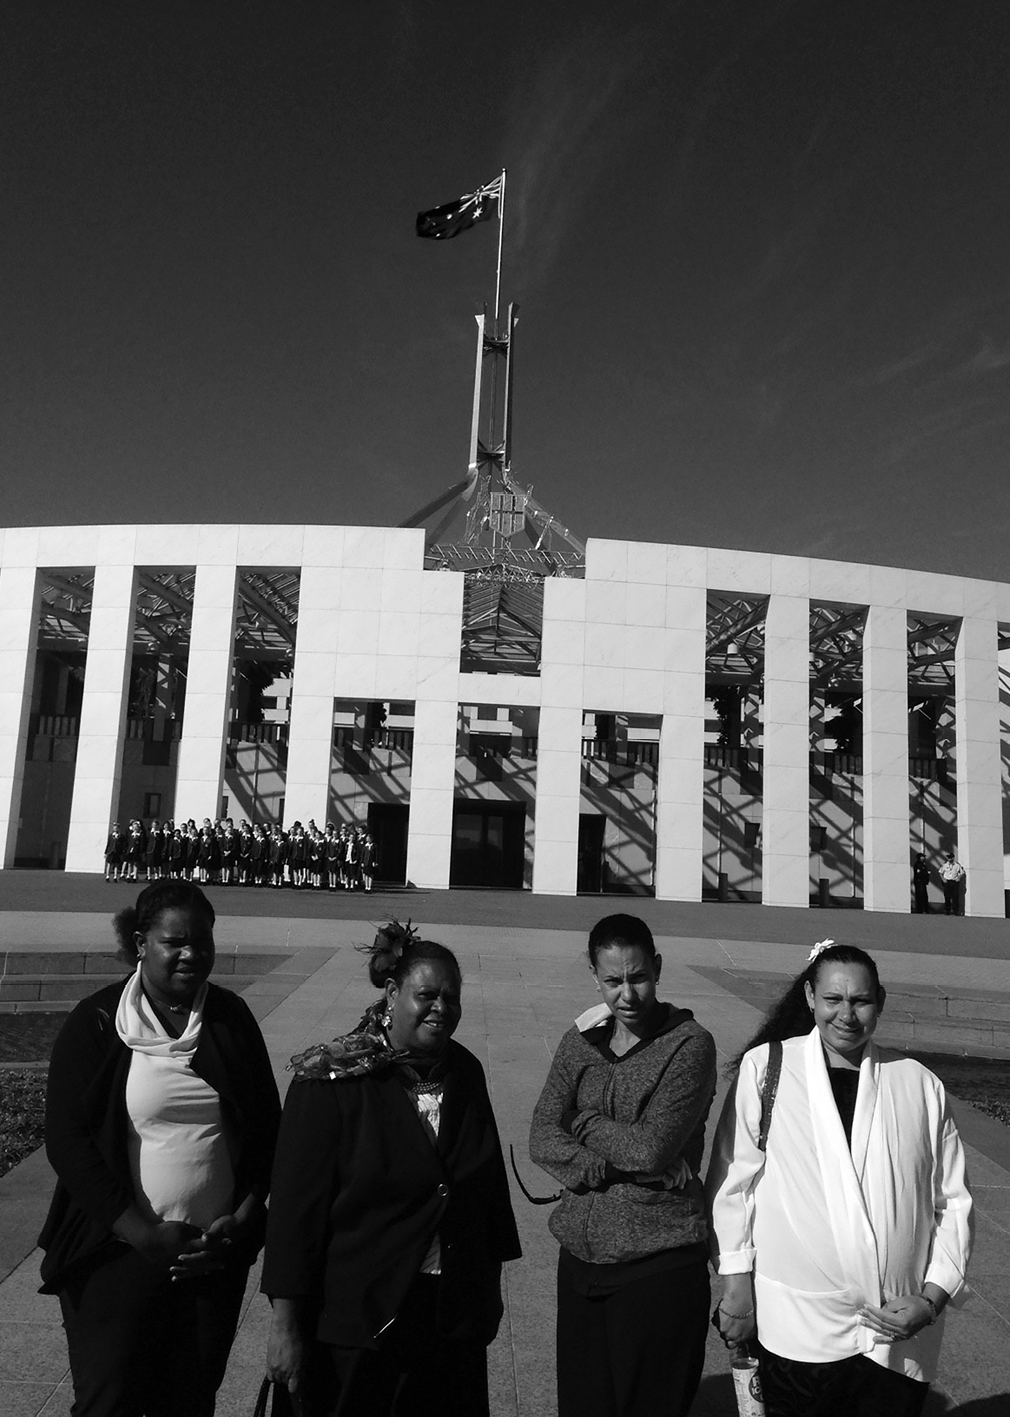 a photograph of participants in the TSRA's inaugural Women's Leadership Programme at Parliament House, Canberra